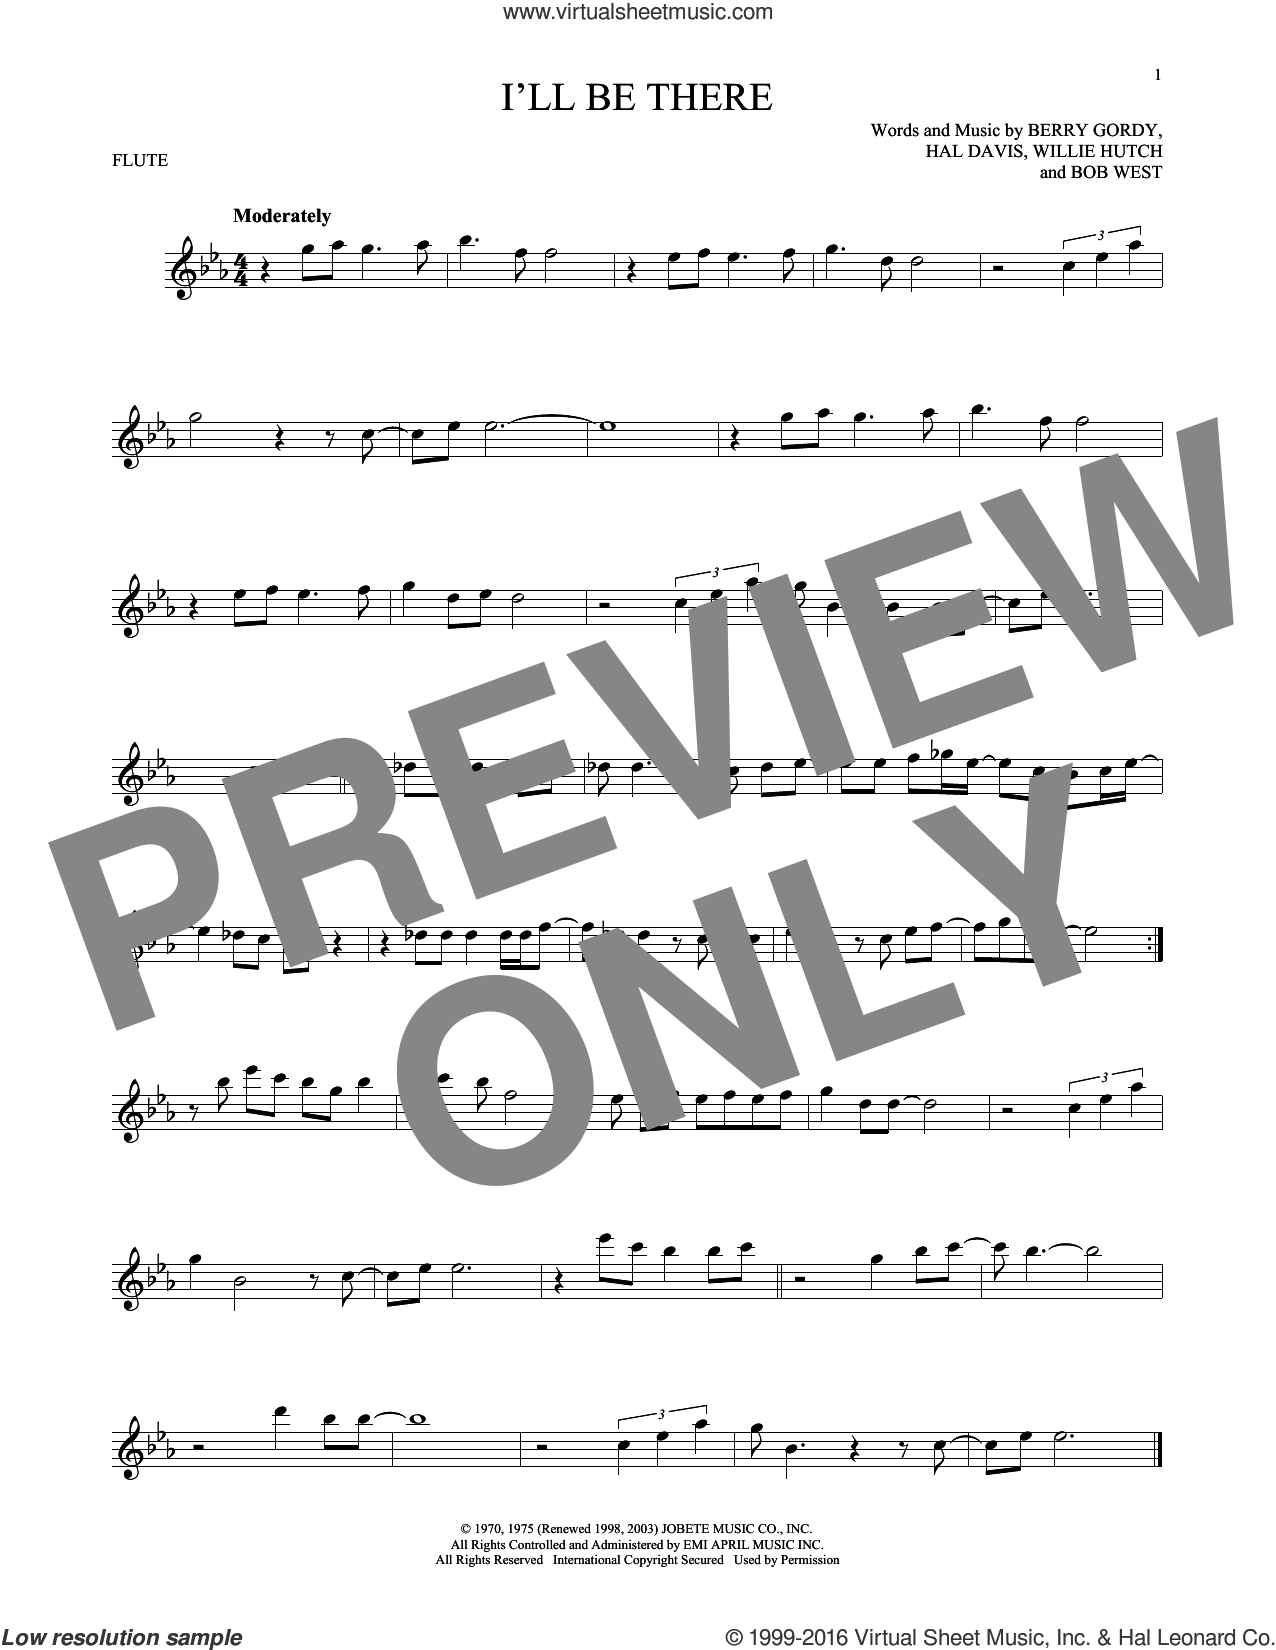 I'll Be There sheet music for flute solo by Hal Davis, The Jackson 5 and Berry Gordy Jr.. Score Image Preview.